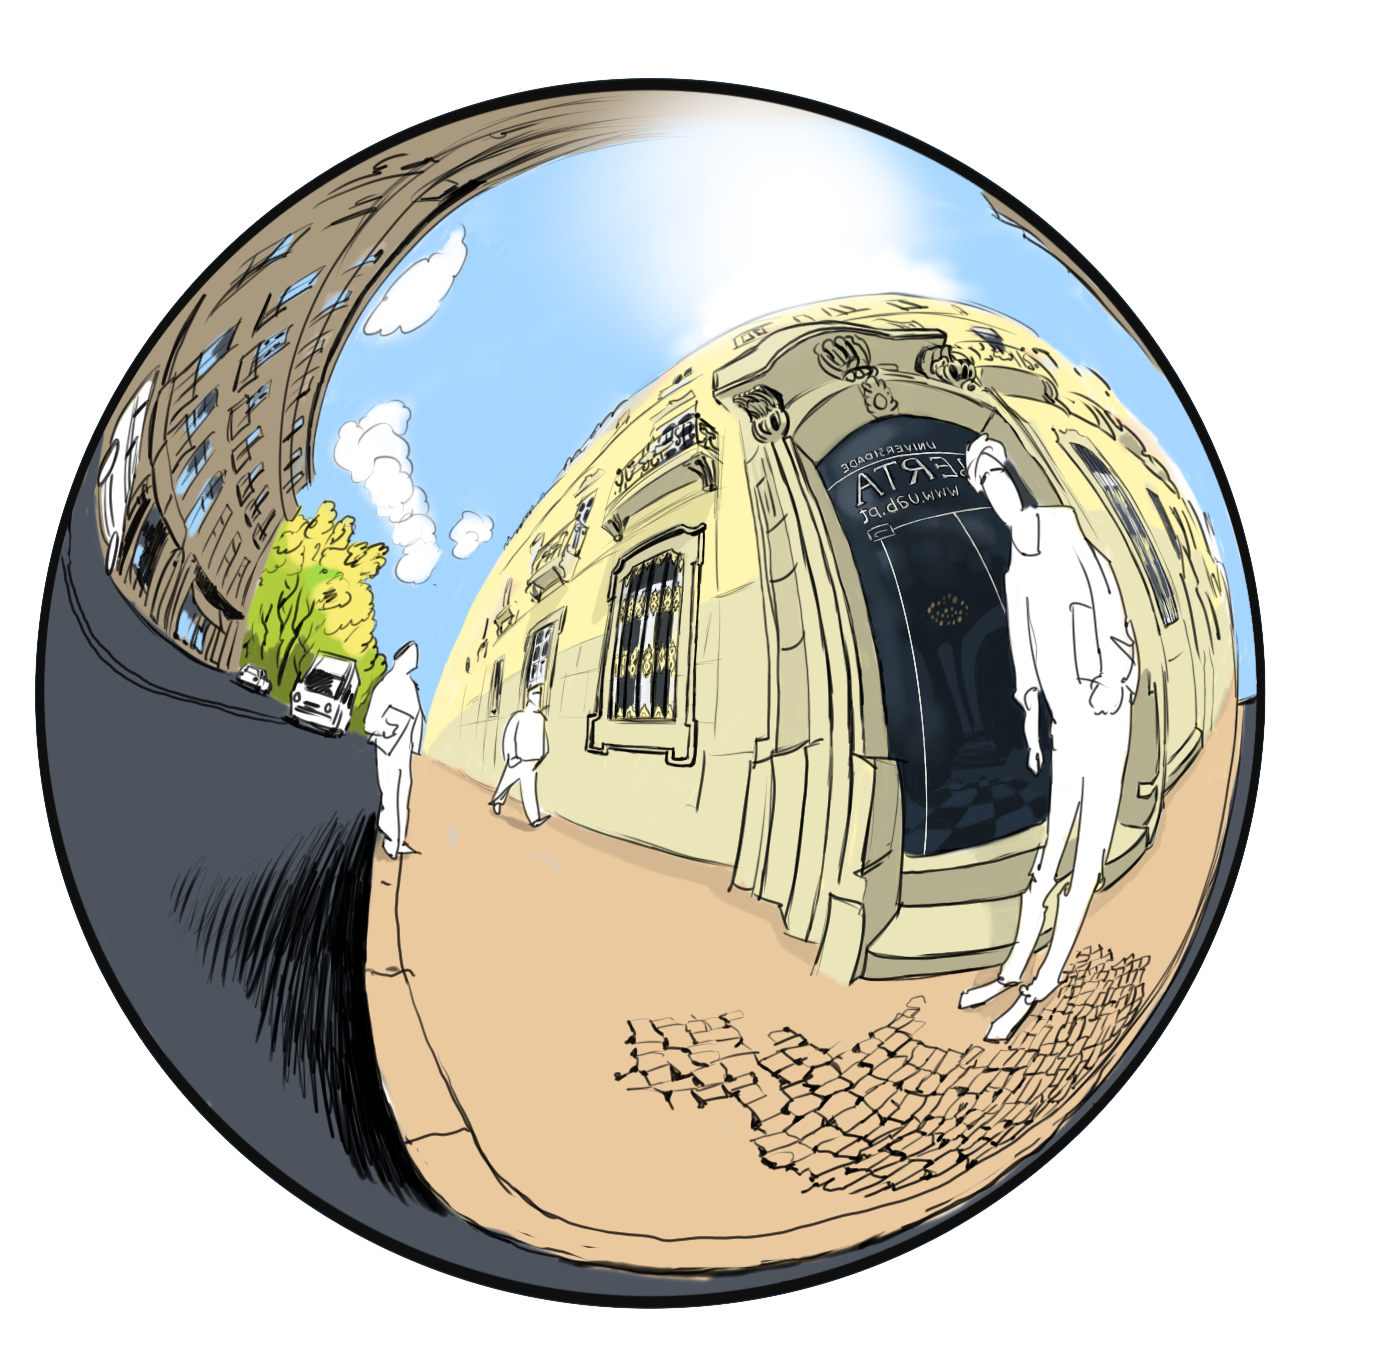 Panorama drawing perspective. Equirectangular perspectives for immersive